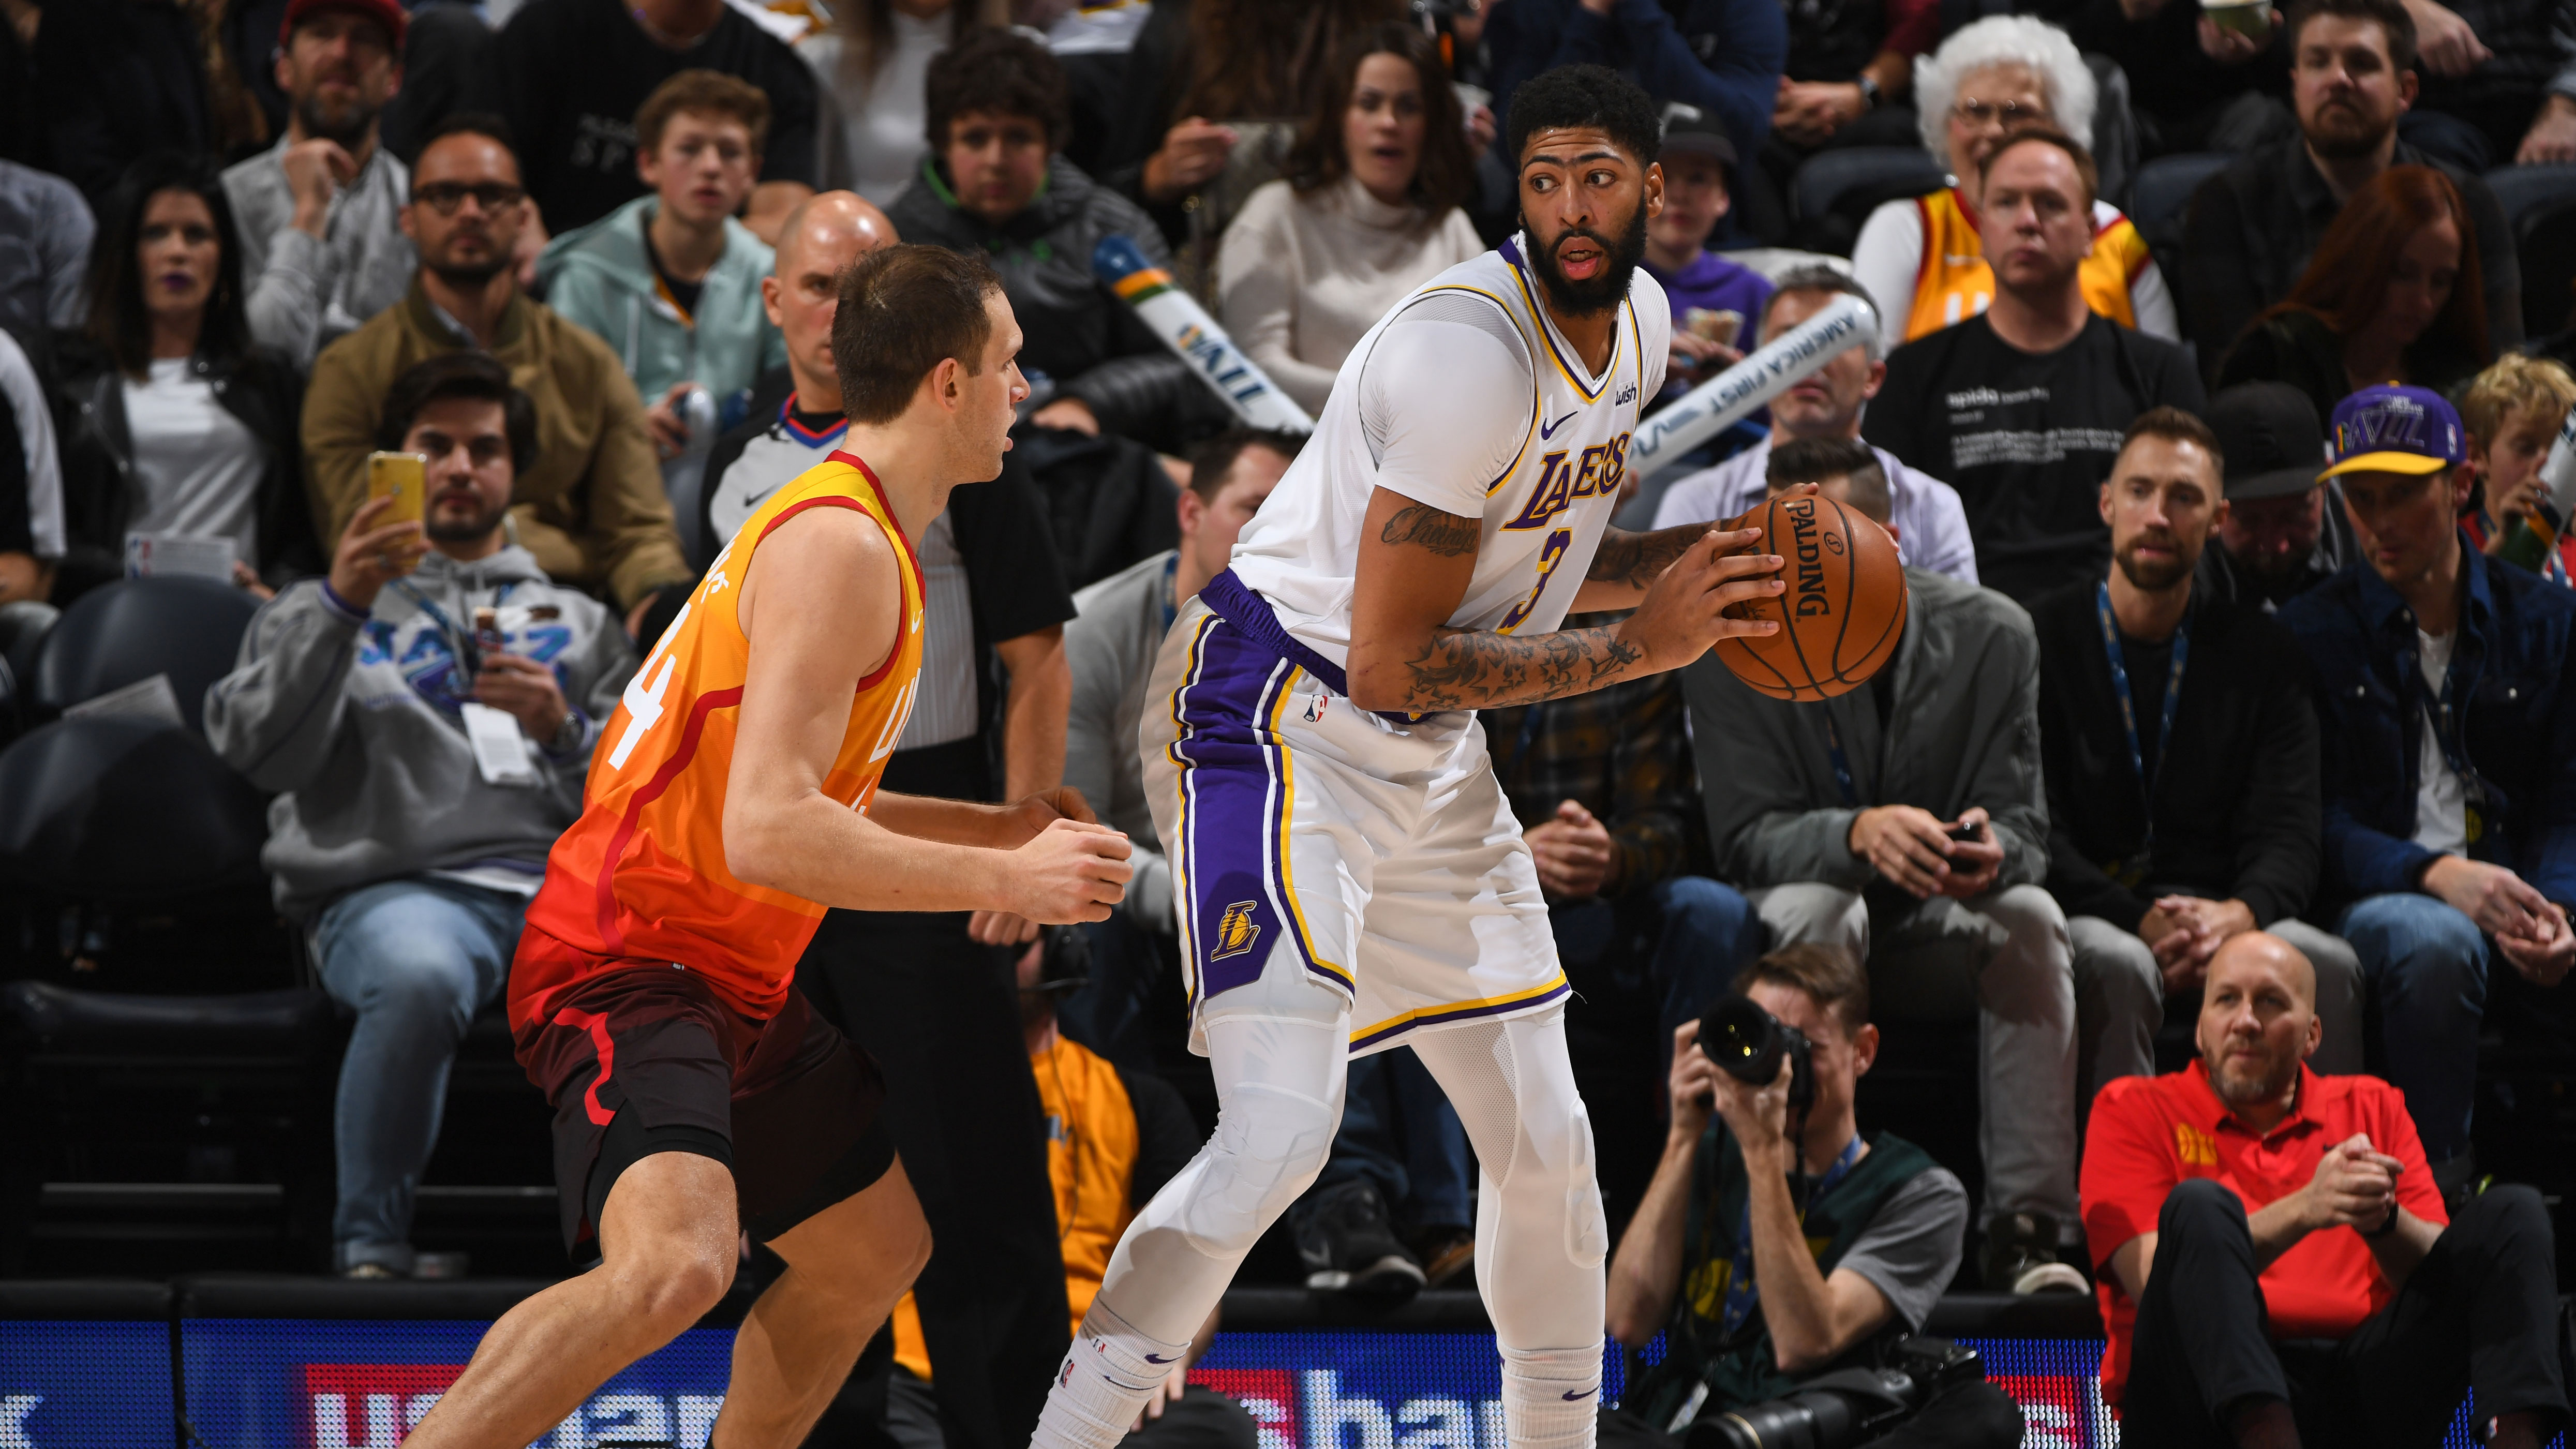 05.12.19. Обзор. GAME RECAP: Lakers 121, Jazz 96